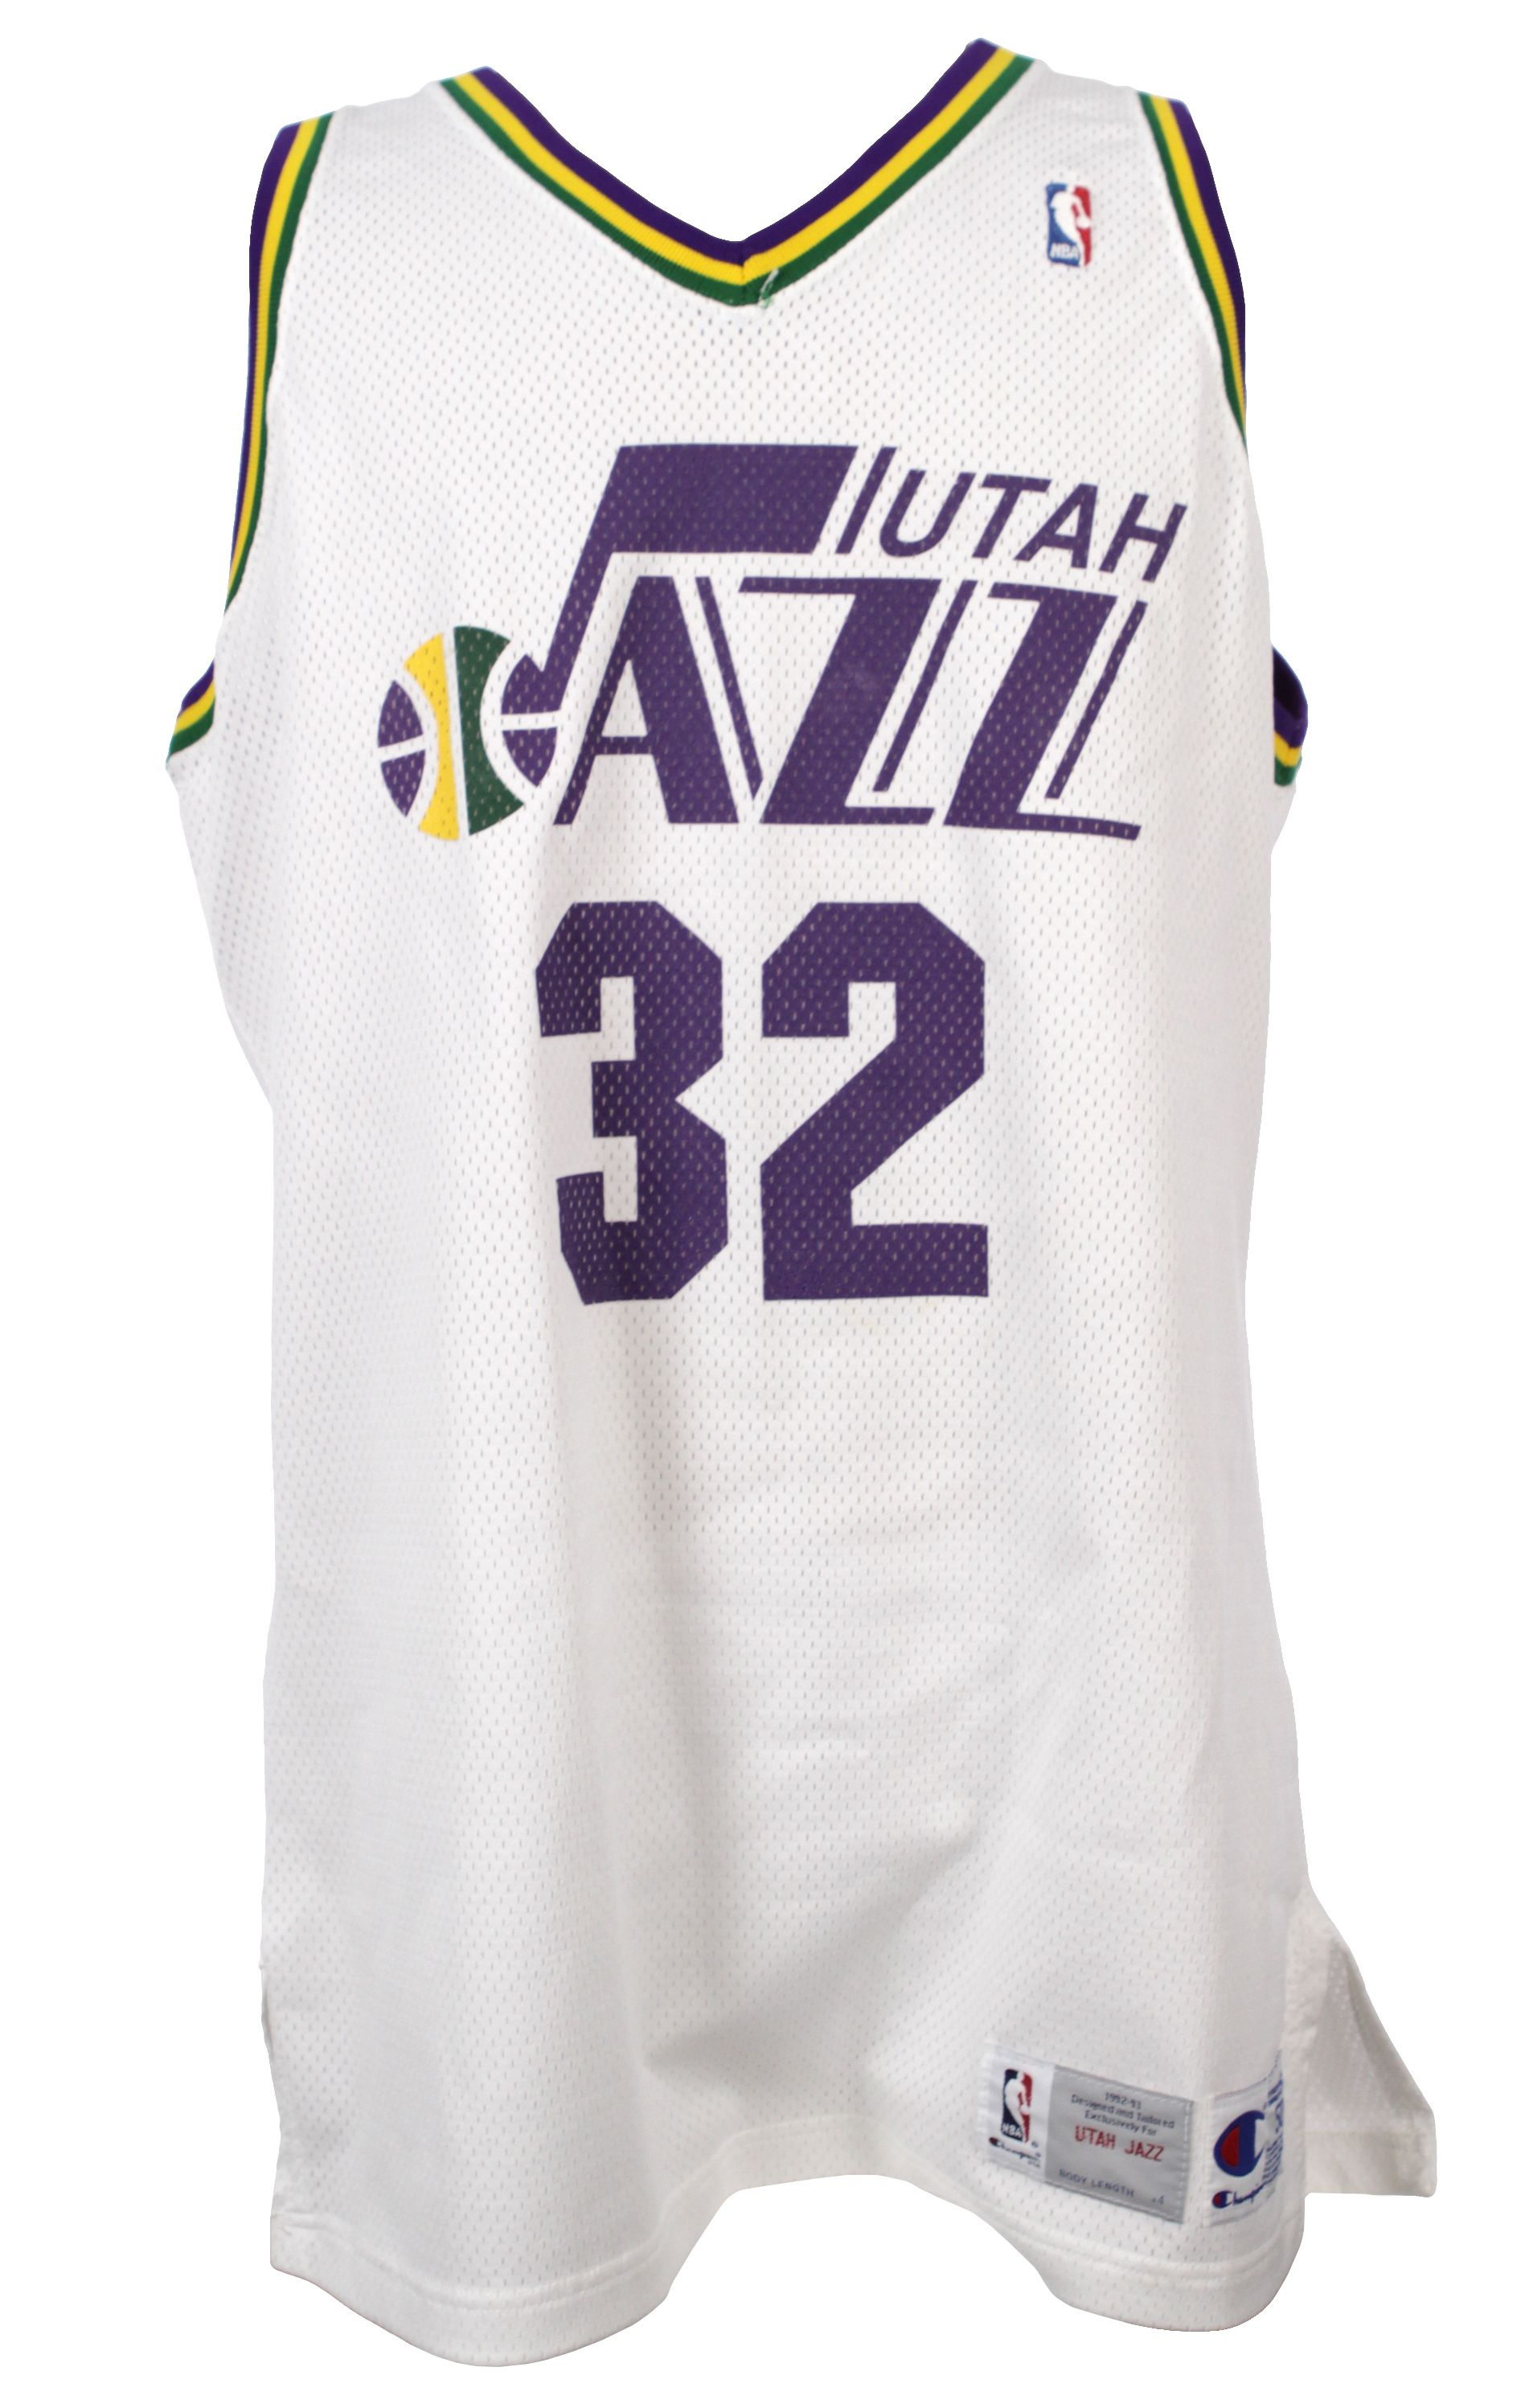 98304ac61 1992-93 Karl Malone Utah Jazz Jersey (MEARS LOA). Touch to zoom